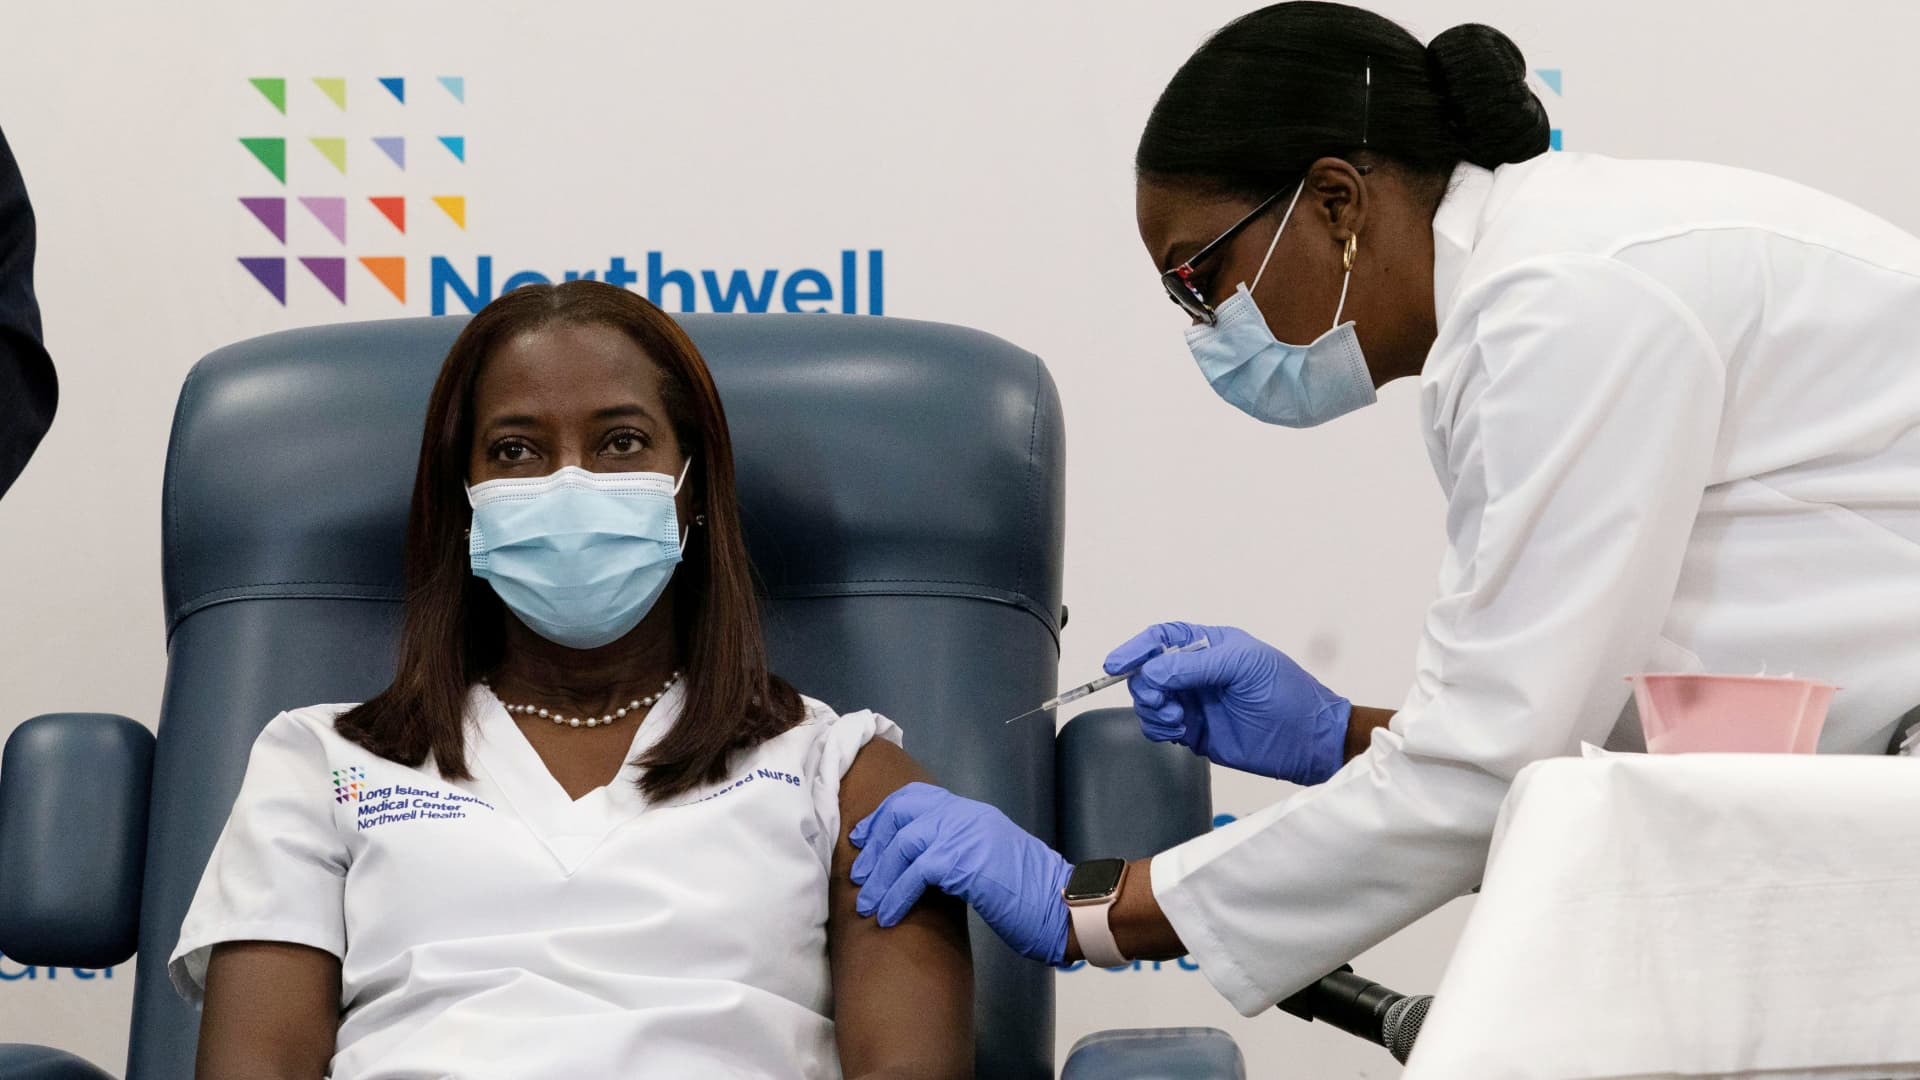 Sandra Lindsay, a nurse at Long Island Jewish Medical Center, is inoculated with the coronavirus disease (COVID-19) vaccine by Dr. Michelle Chester from Northwell Health at Long Island Jewish Medical Center in New Hyde Park, New York, U.S., December 14, 2020.